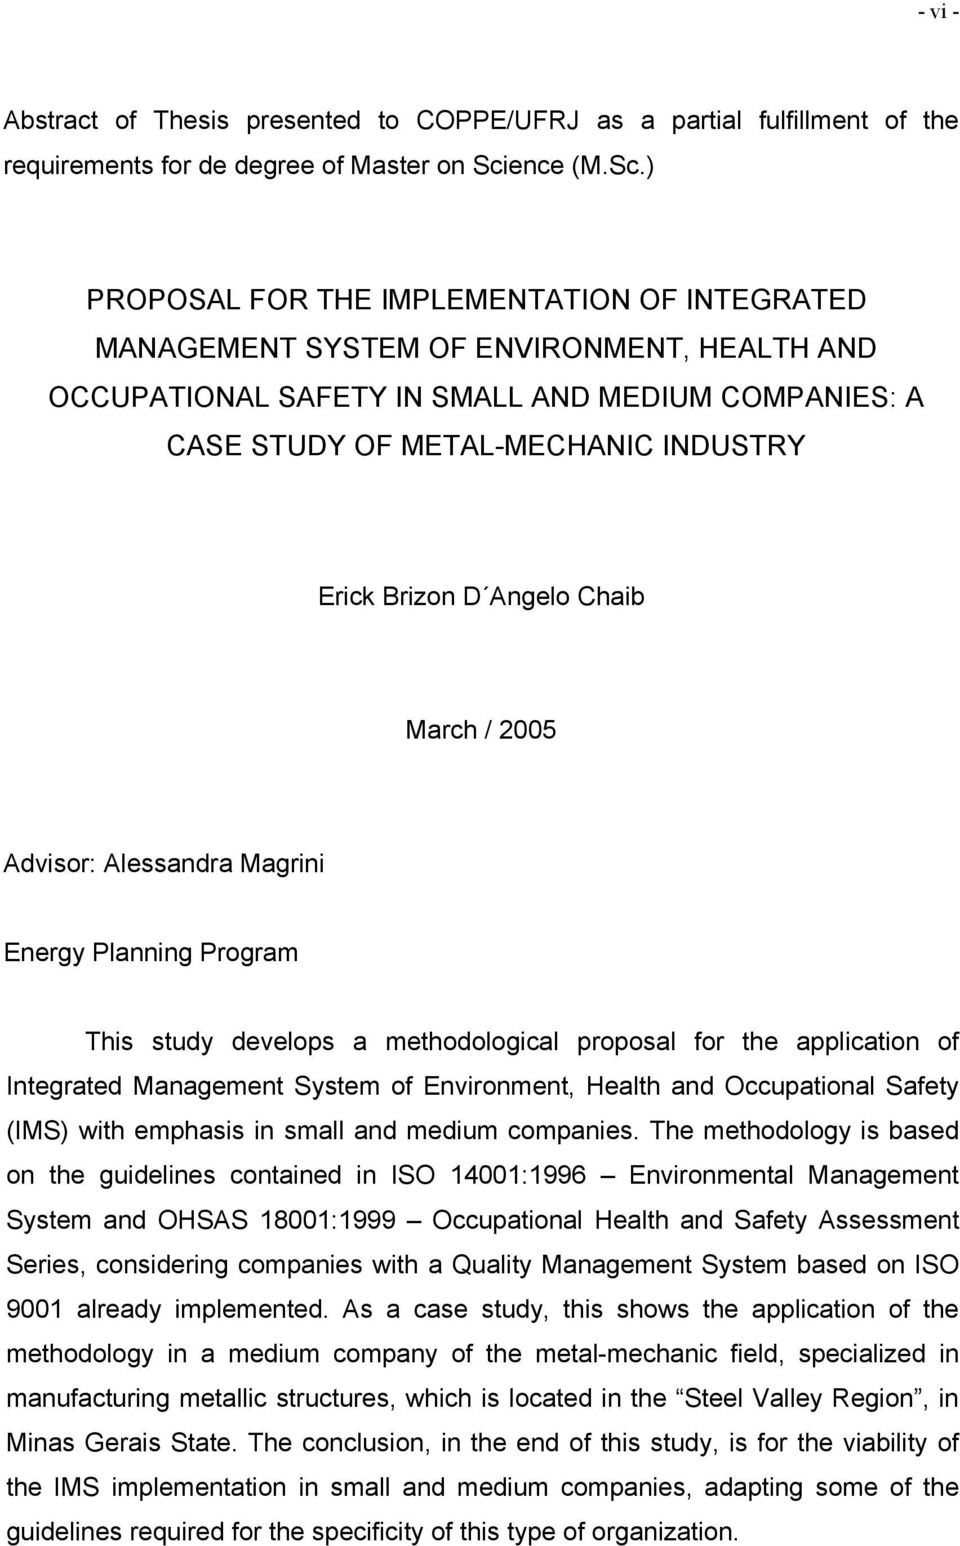 ) PROPOSAL FOR THE IMPLEMENTATION OF INTEGRATED MANAGEMENT SYSTEM OF ENVIRONMENT, HEALTH AND OCCUPATIONAL SAFETY IN SMALL AND MEDIUM COMPANIES: A CASE STUDY OF METAL-MECHANIC INDUSTRY Erick Brizon D